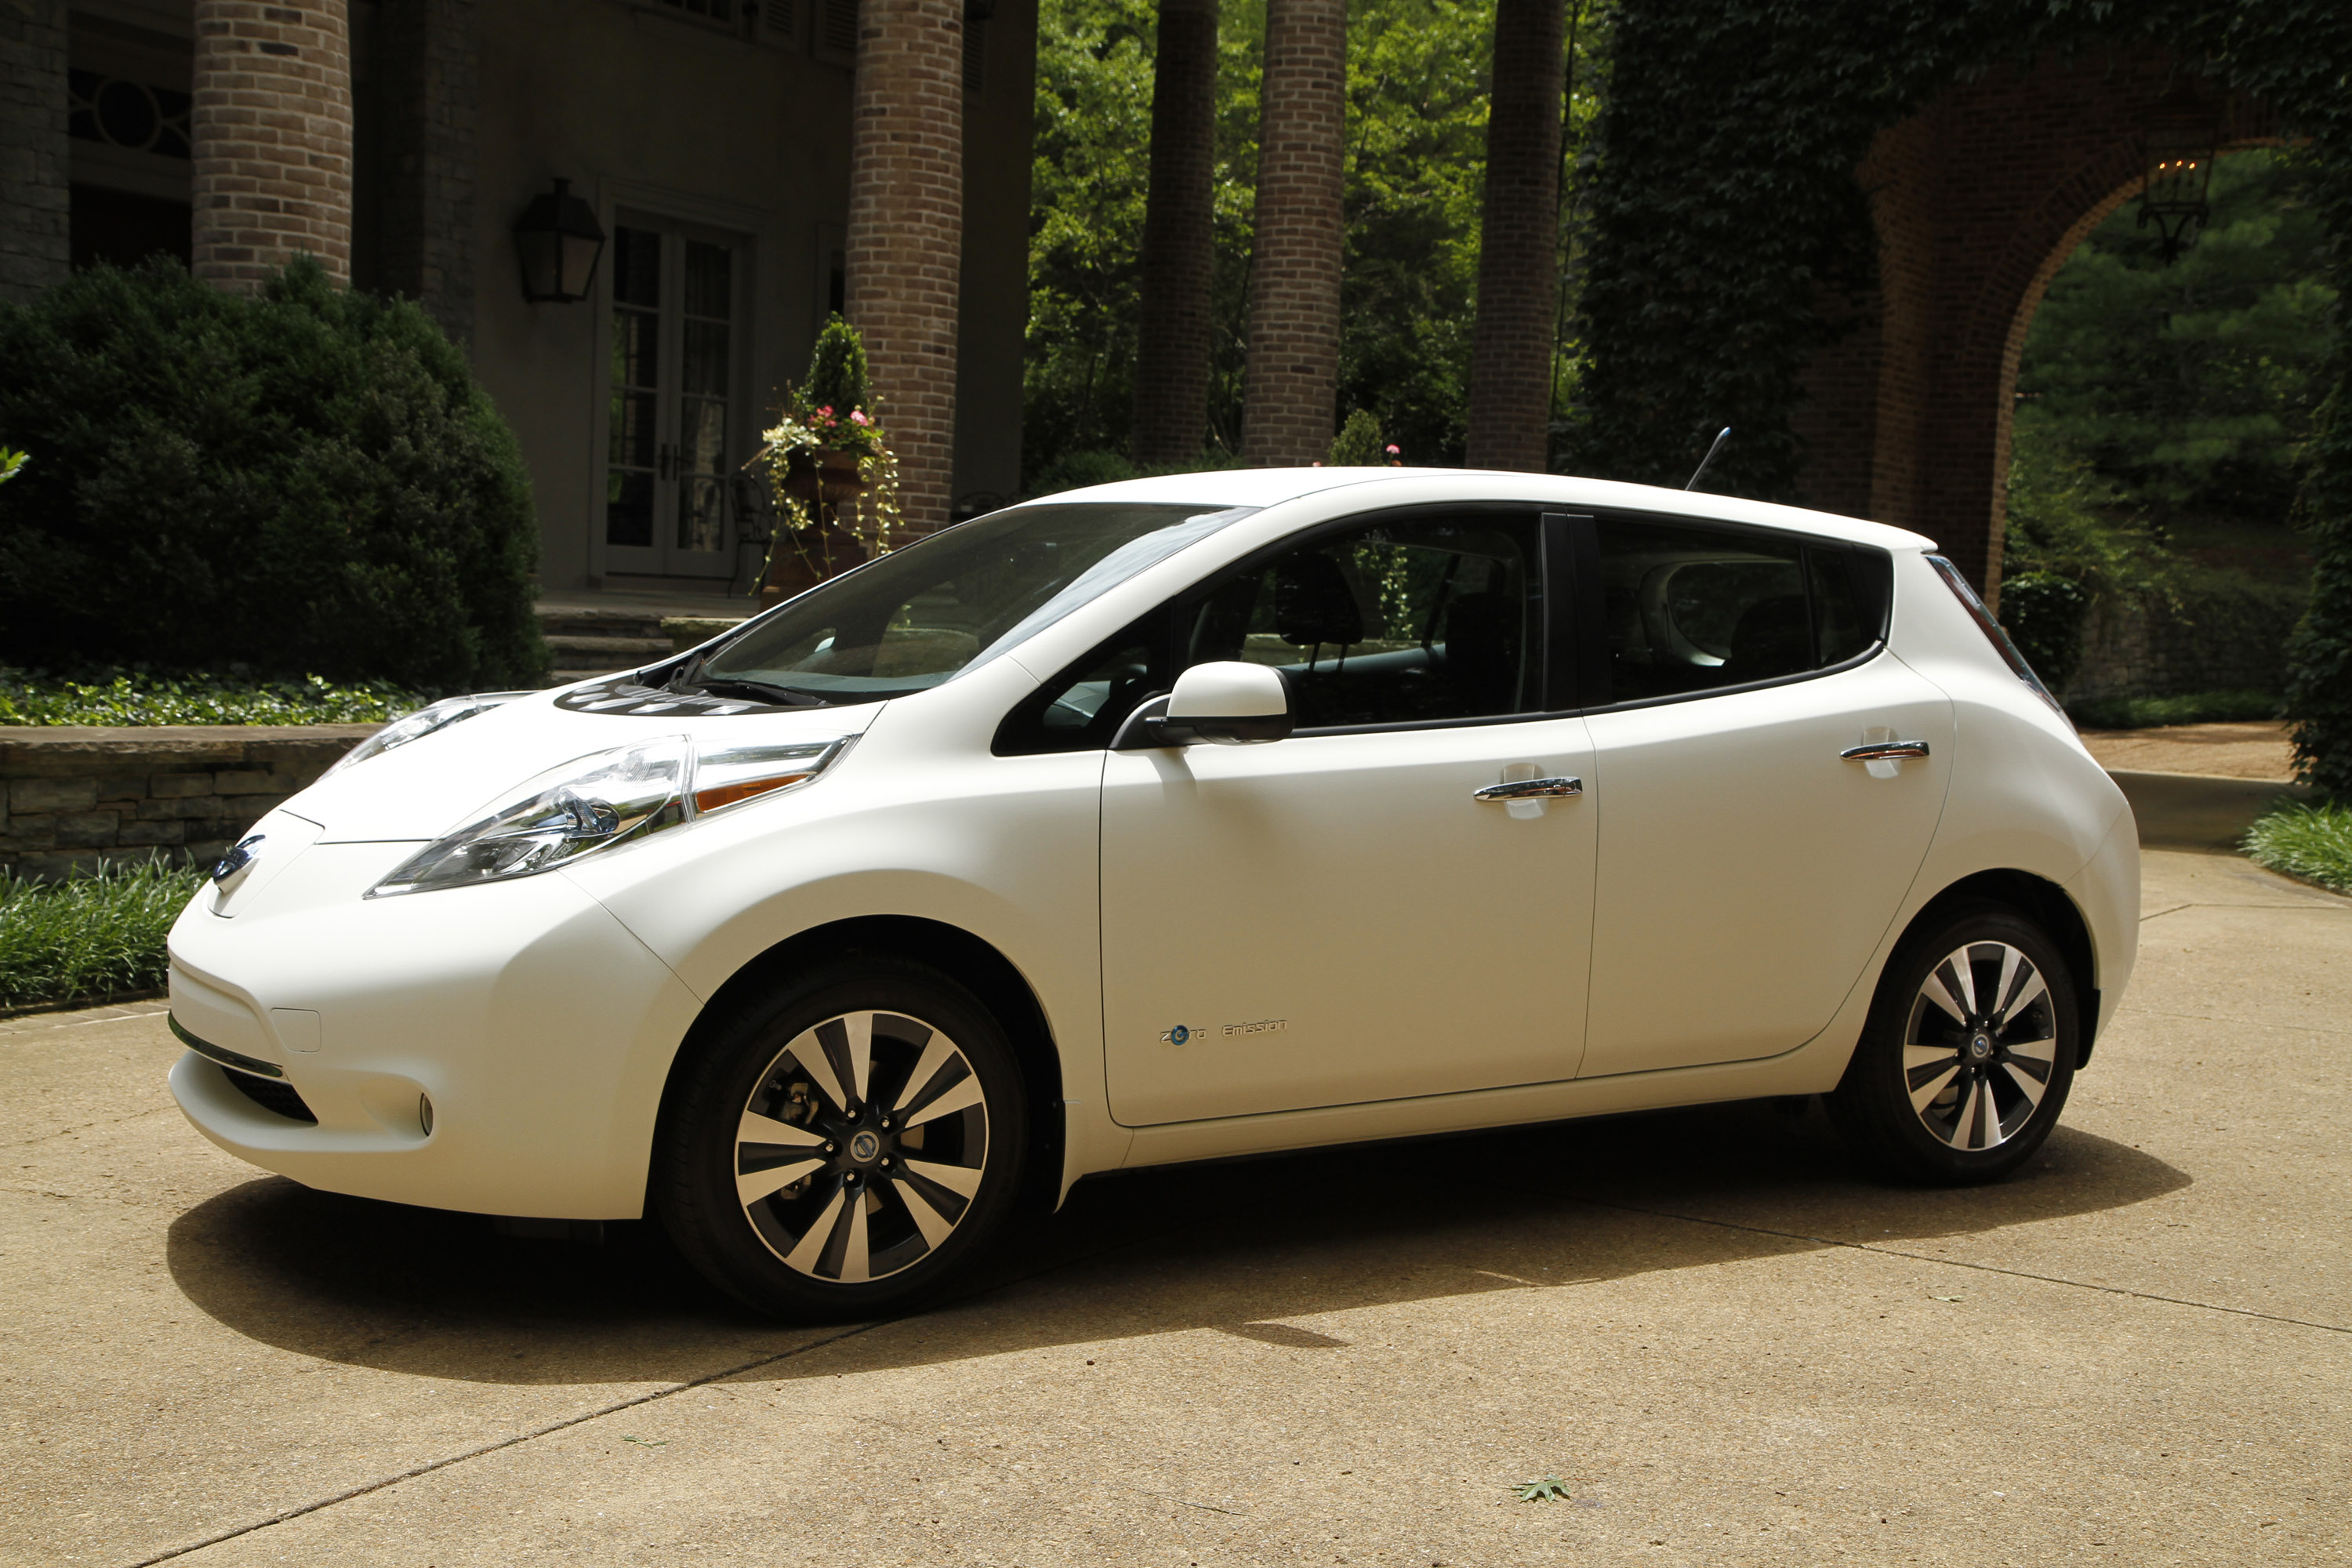 Nissan Leaf The World S Cleanest Self Washing Car